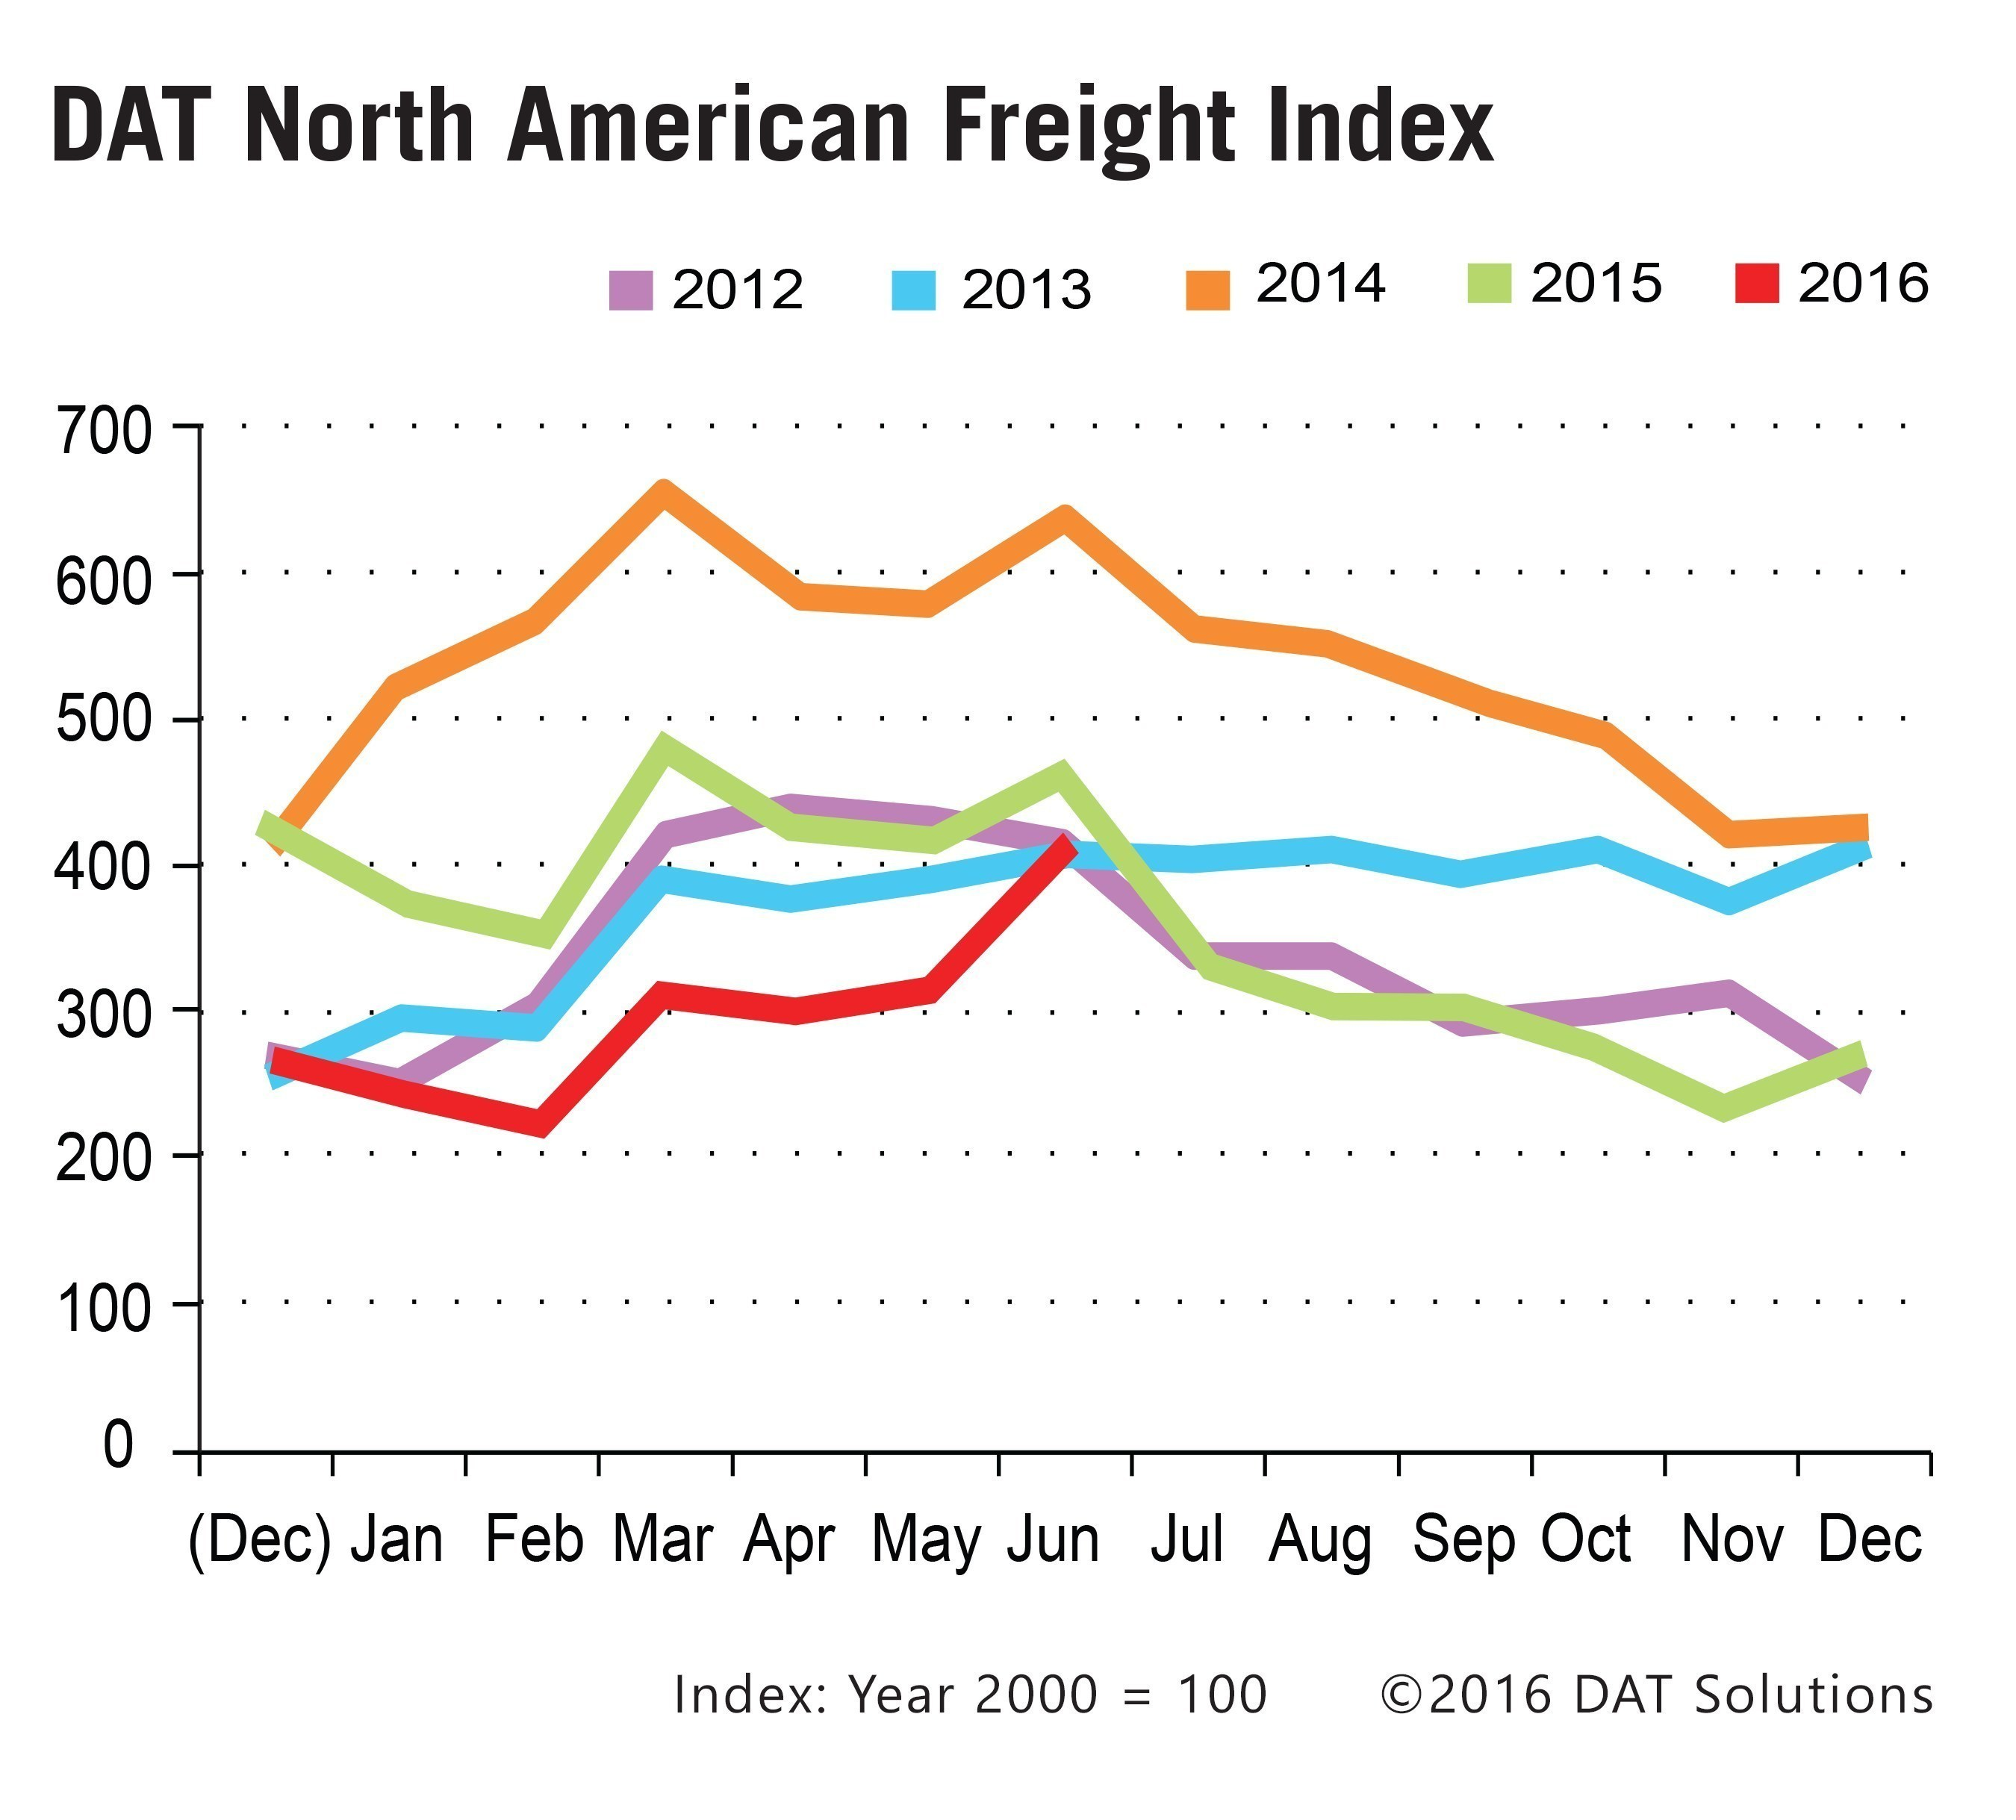 Spot marketing freight volumes show signs of life in June 2016, boosted by seasonal freight uptick.